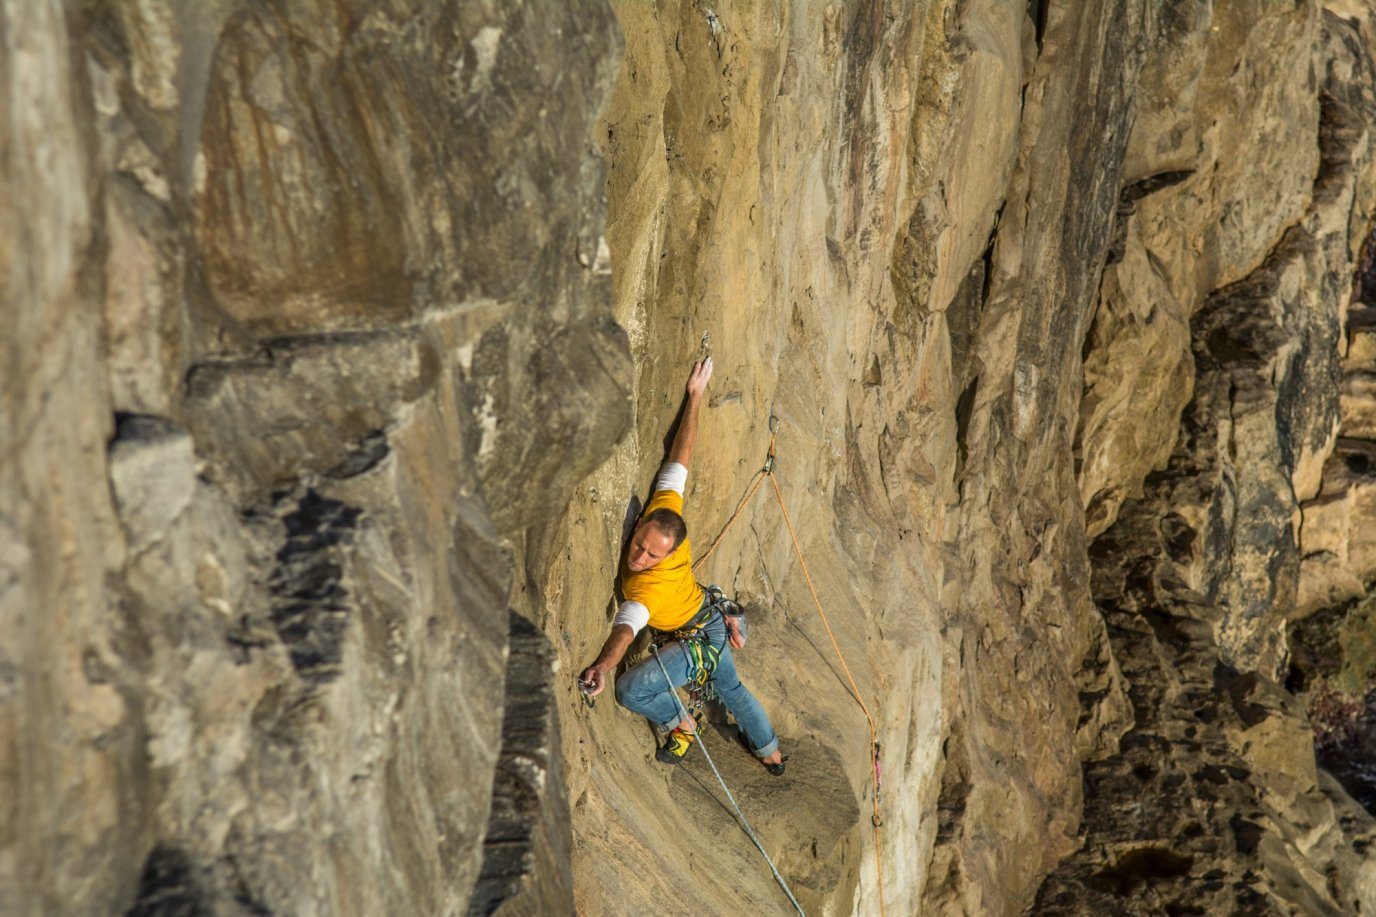 chris-weedon-first-ascent-of-second-helping-e5-6a-fishermens-ledge-swanage-5-11-2016-1